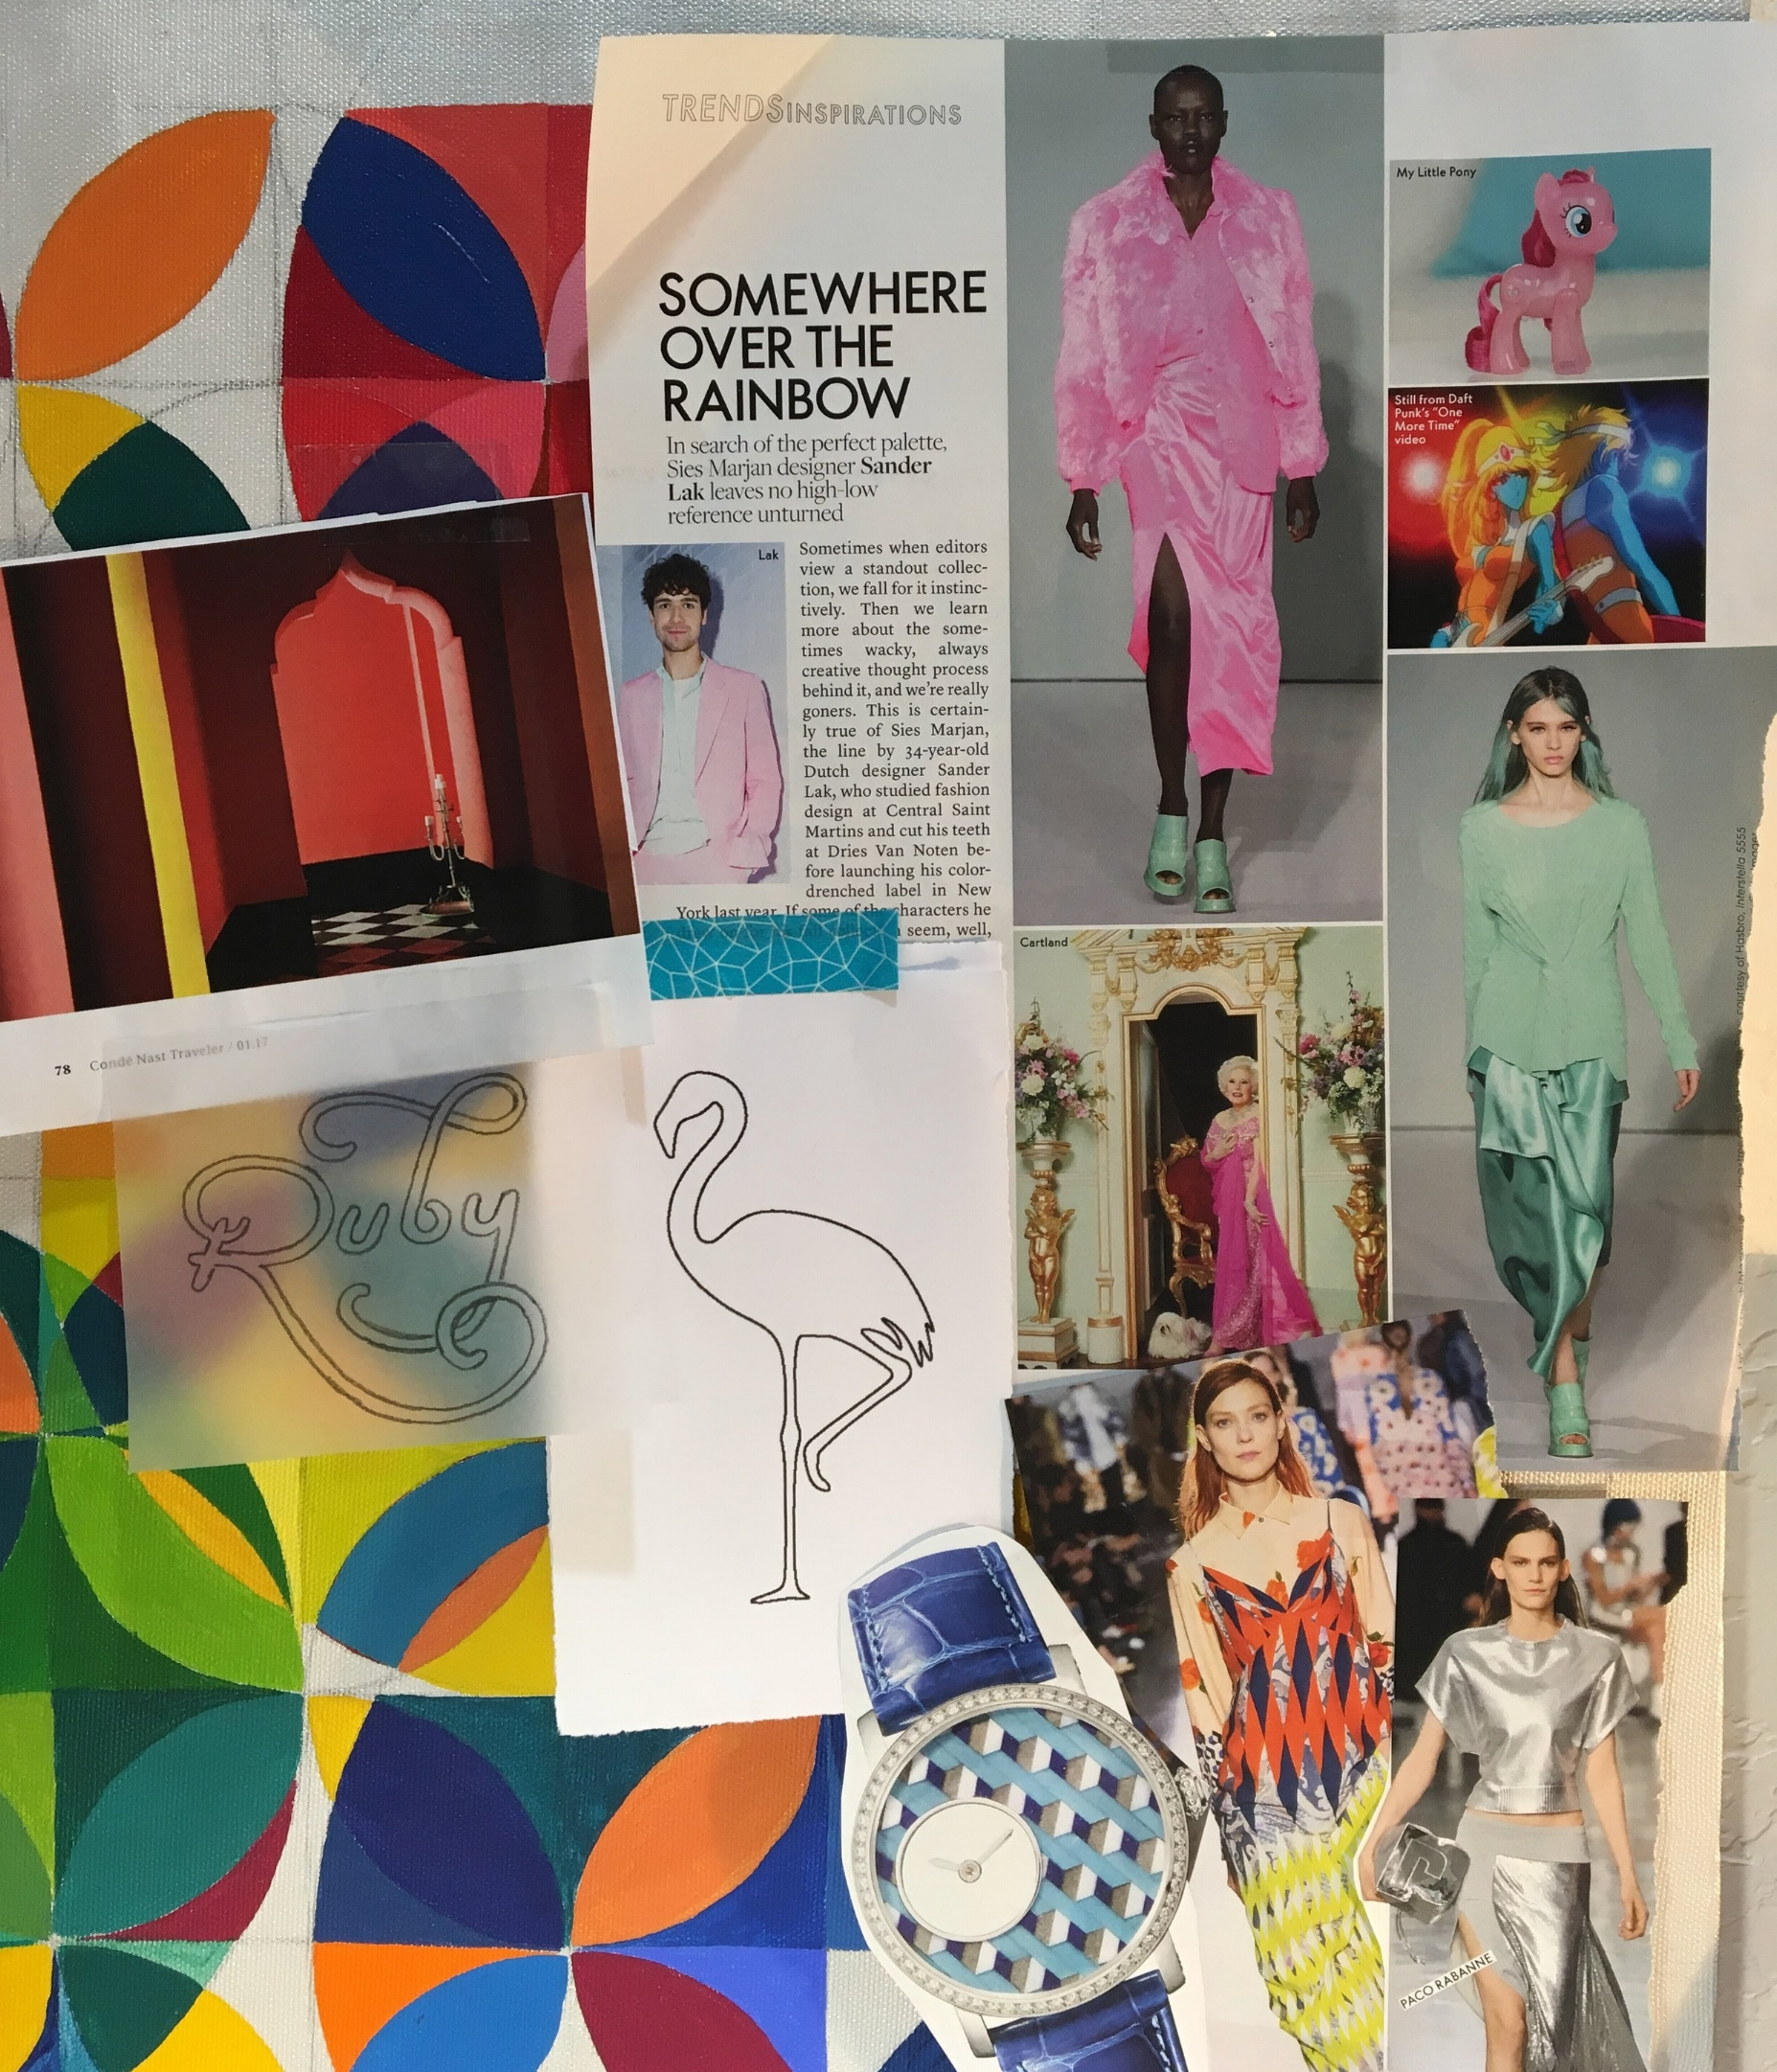 A feature on designer Sander Lak, ripped out of one of my fashion mags.